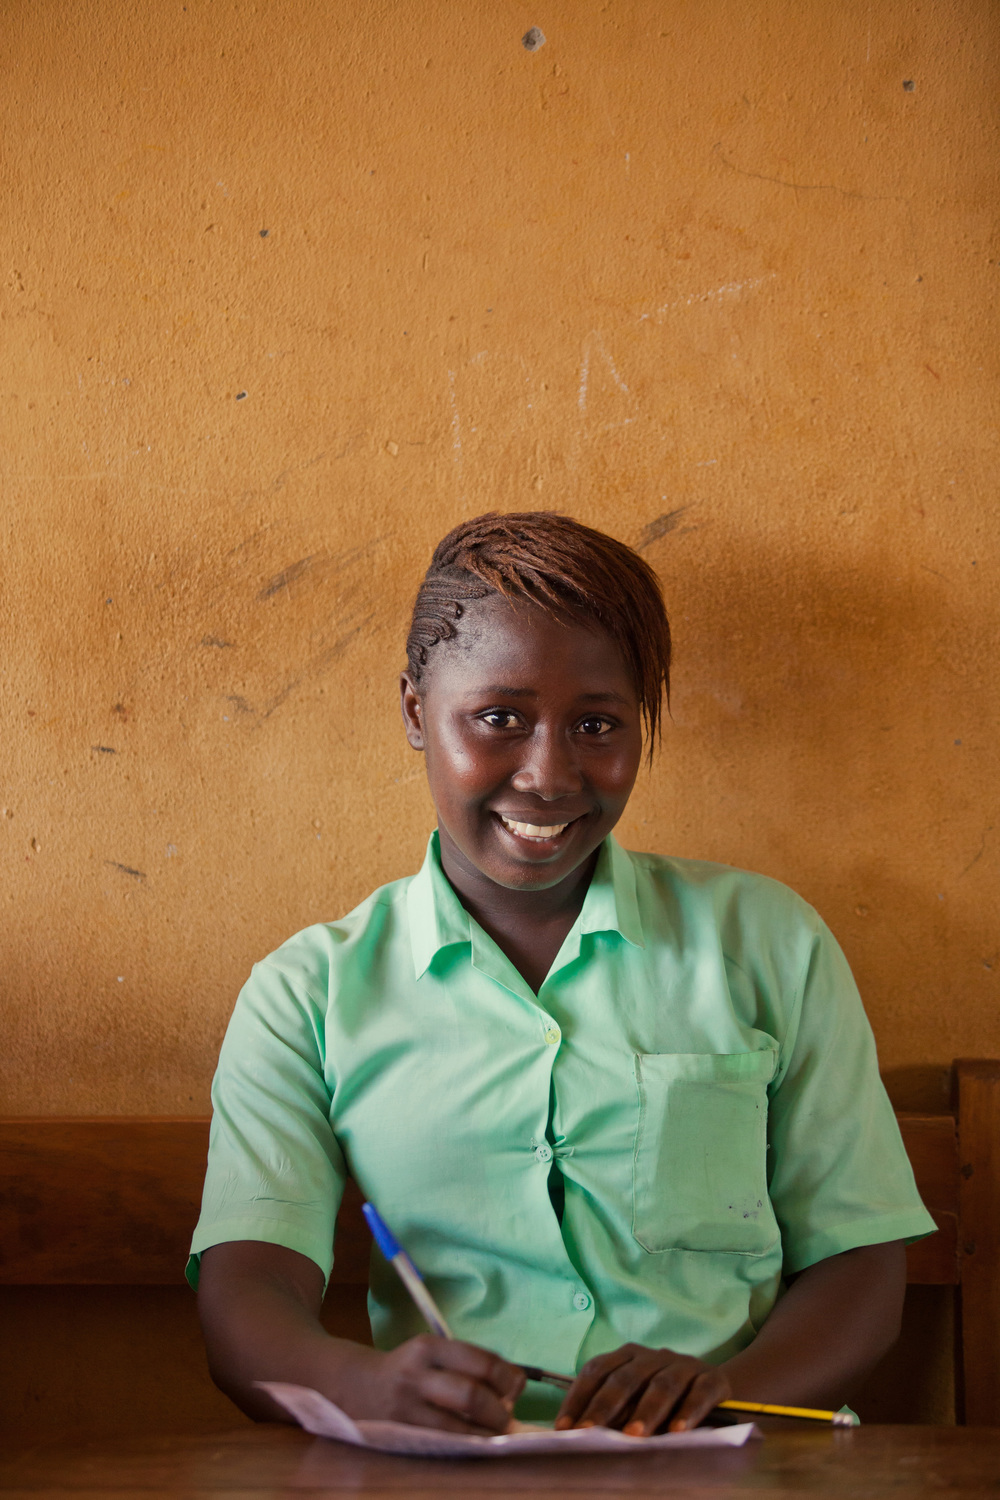 Isha's f amily was displaced by the war in Sierra Leone soon after she was born, and they had to leave their support network behind them. When Ebola hit the country last year, it claimed both of her parents. Isha, 15, is quick to smile and gets good grades. She's eager to be back in class after a year of no school.